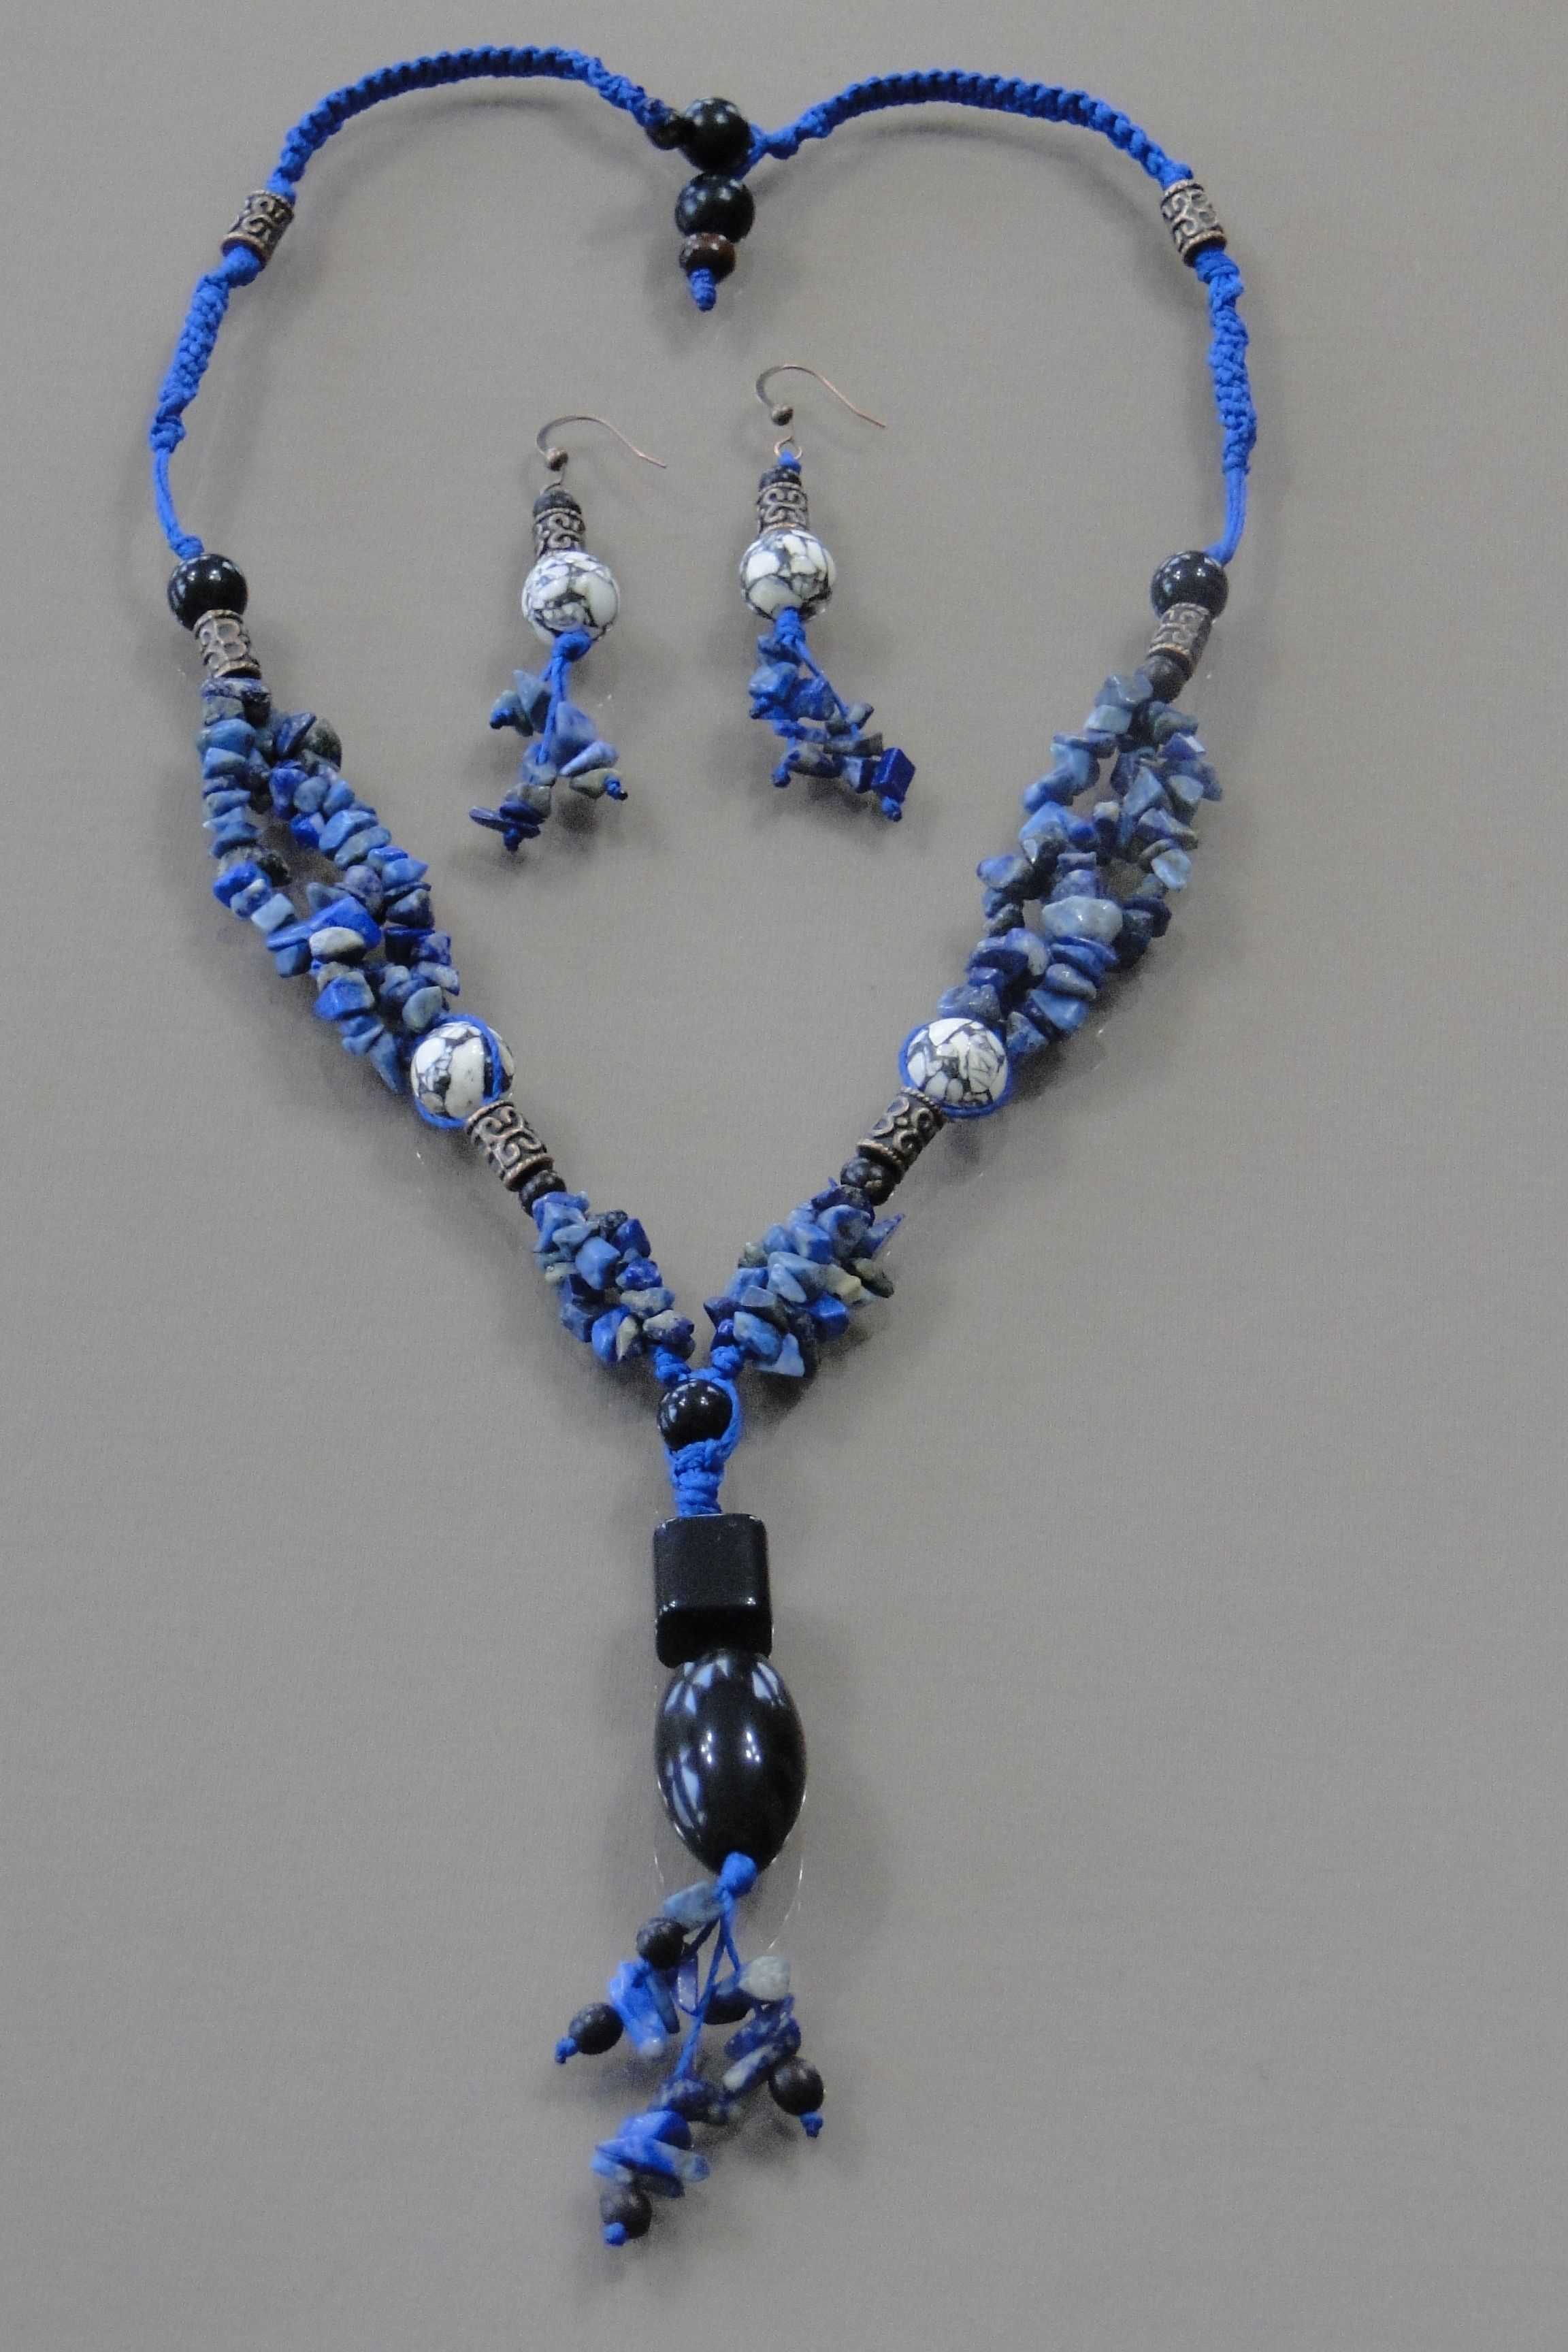 Long necklace 30cm with mixed size black taguas. Metal spacers, chipped stone and Chinese stone, Acai seed and waxed thread.